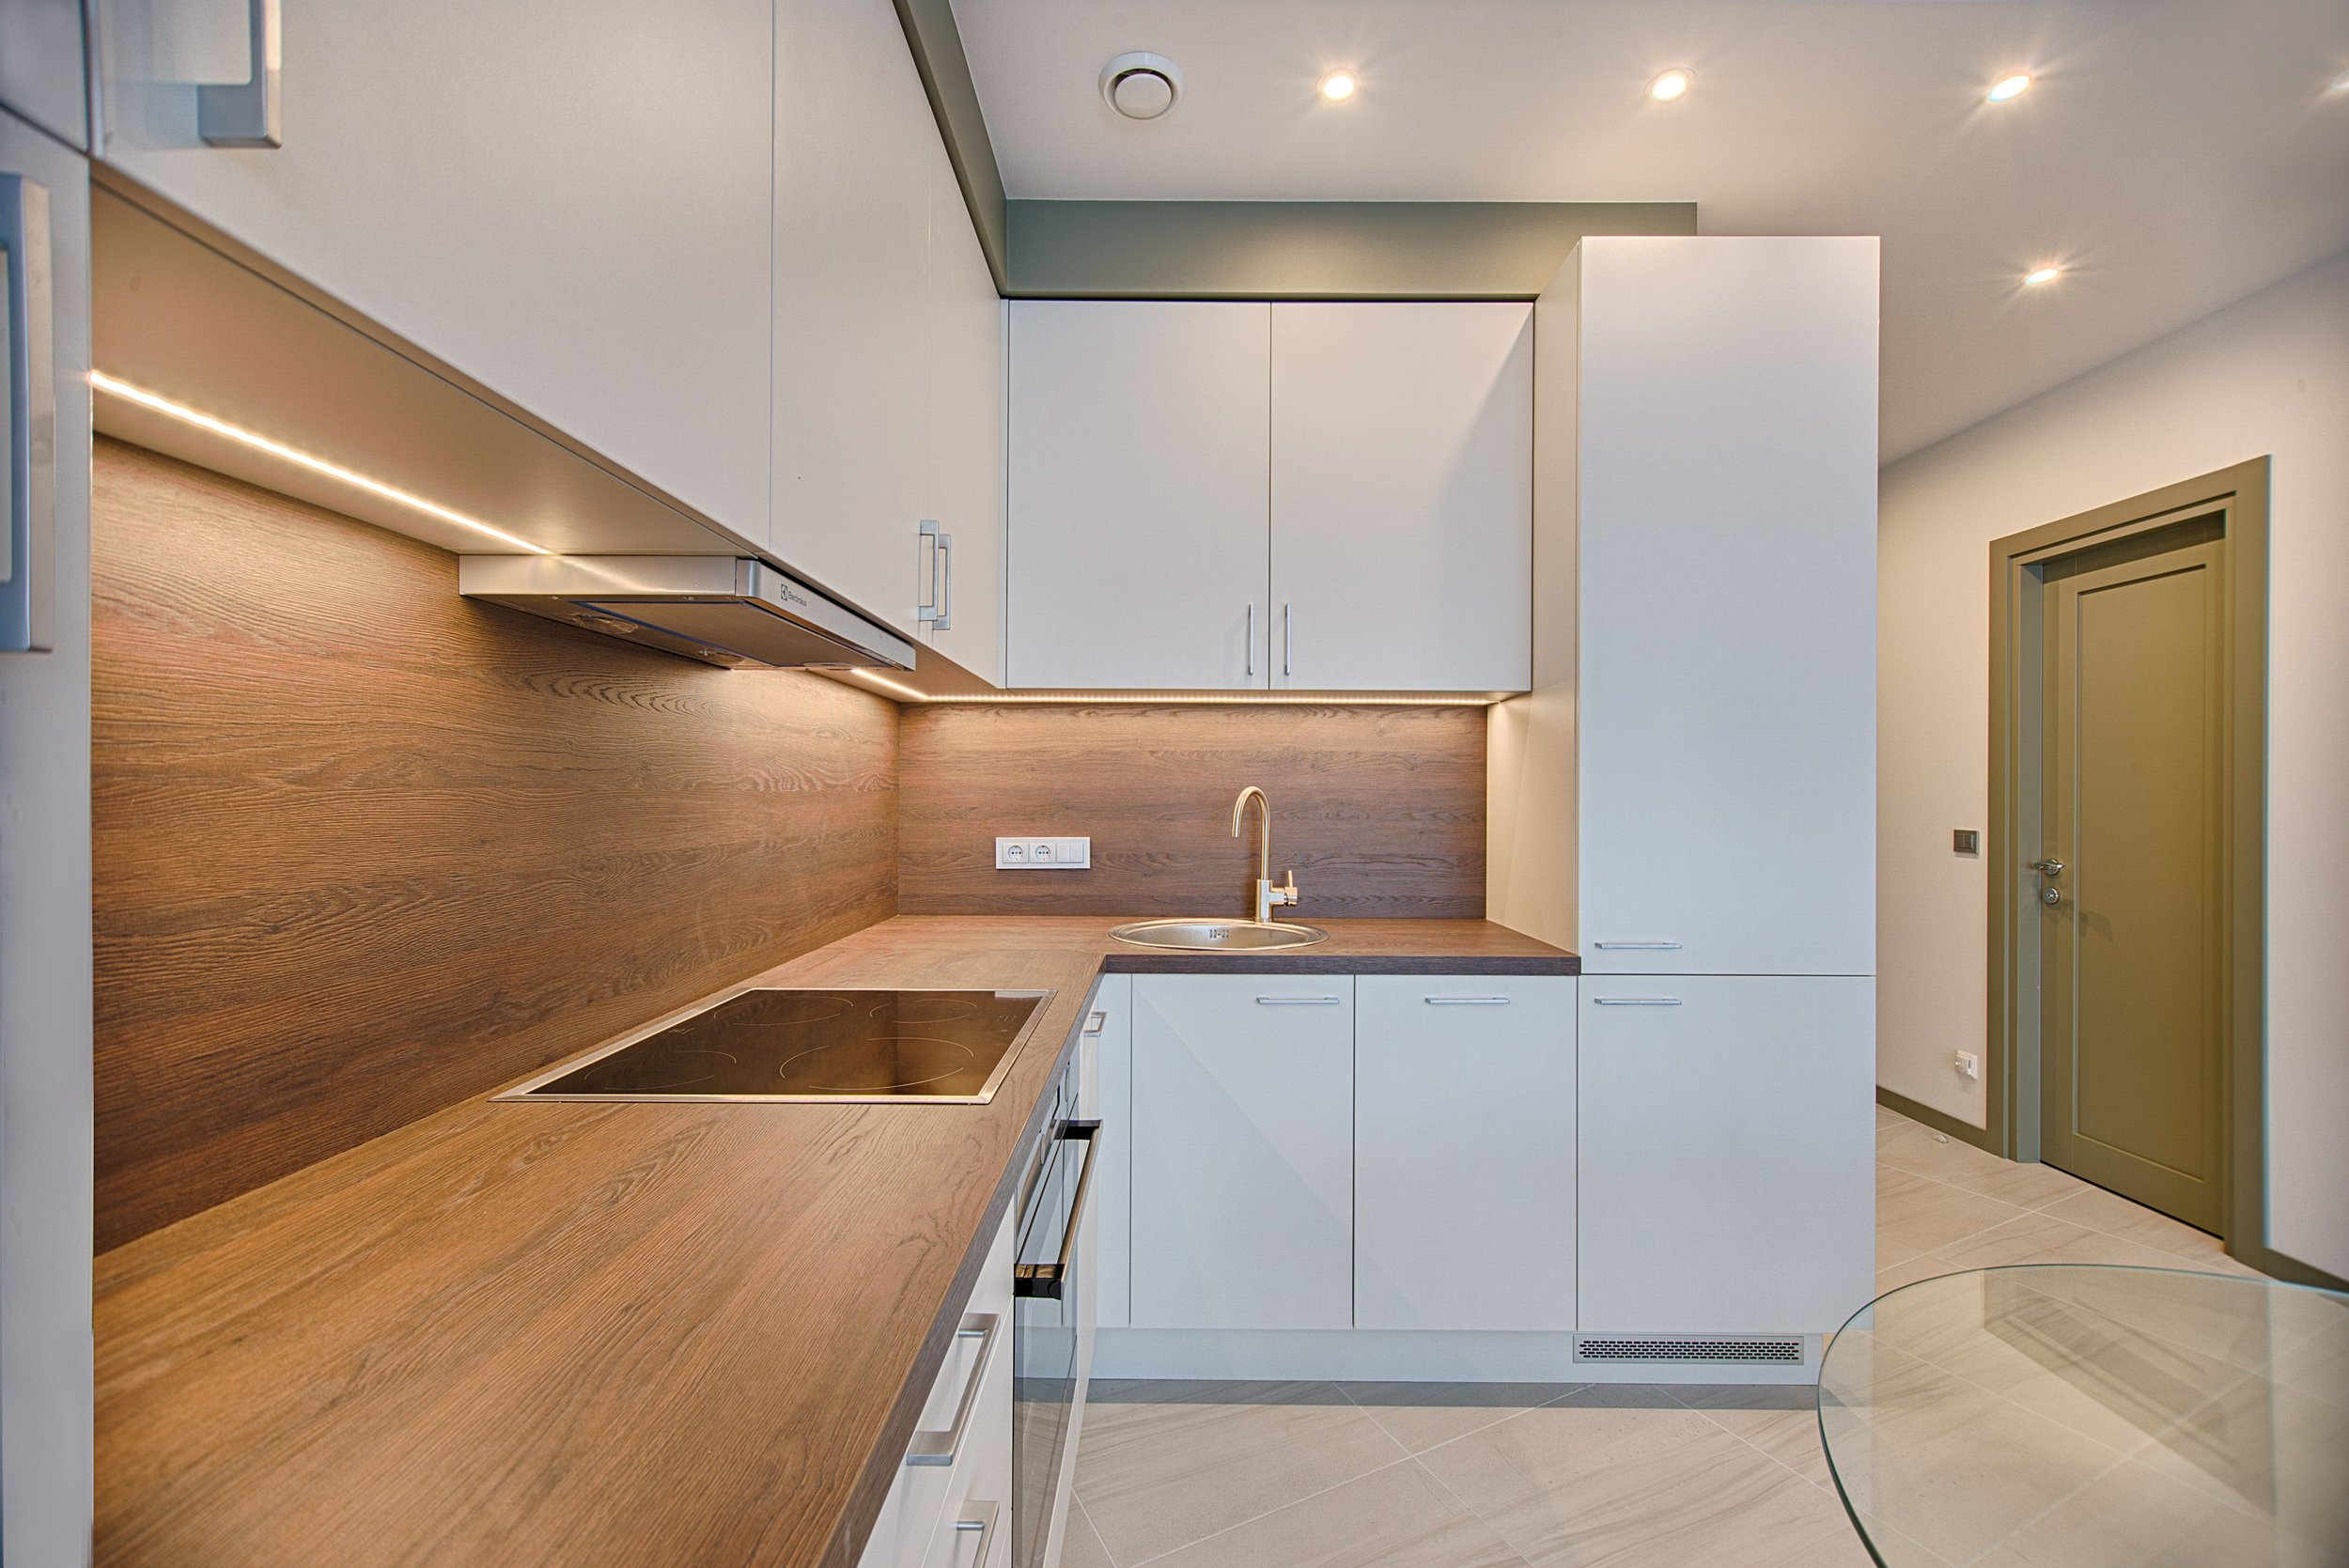 apartment-architecture-cabinets-1643384.jpg